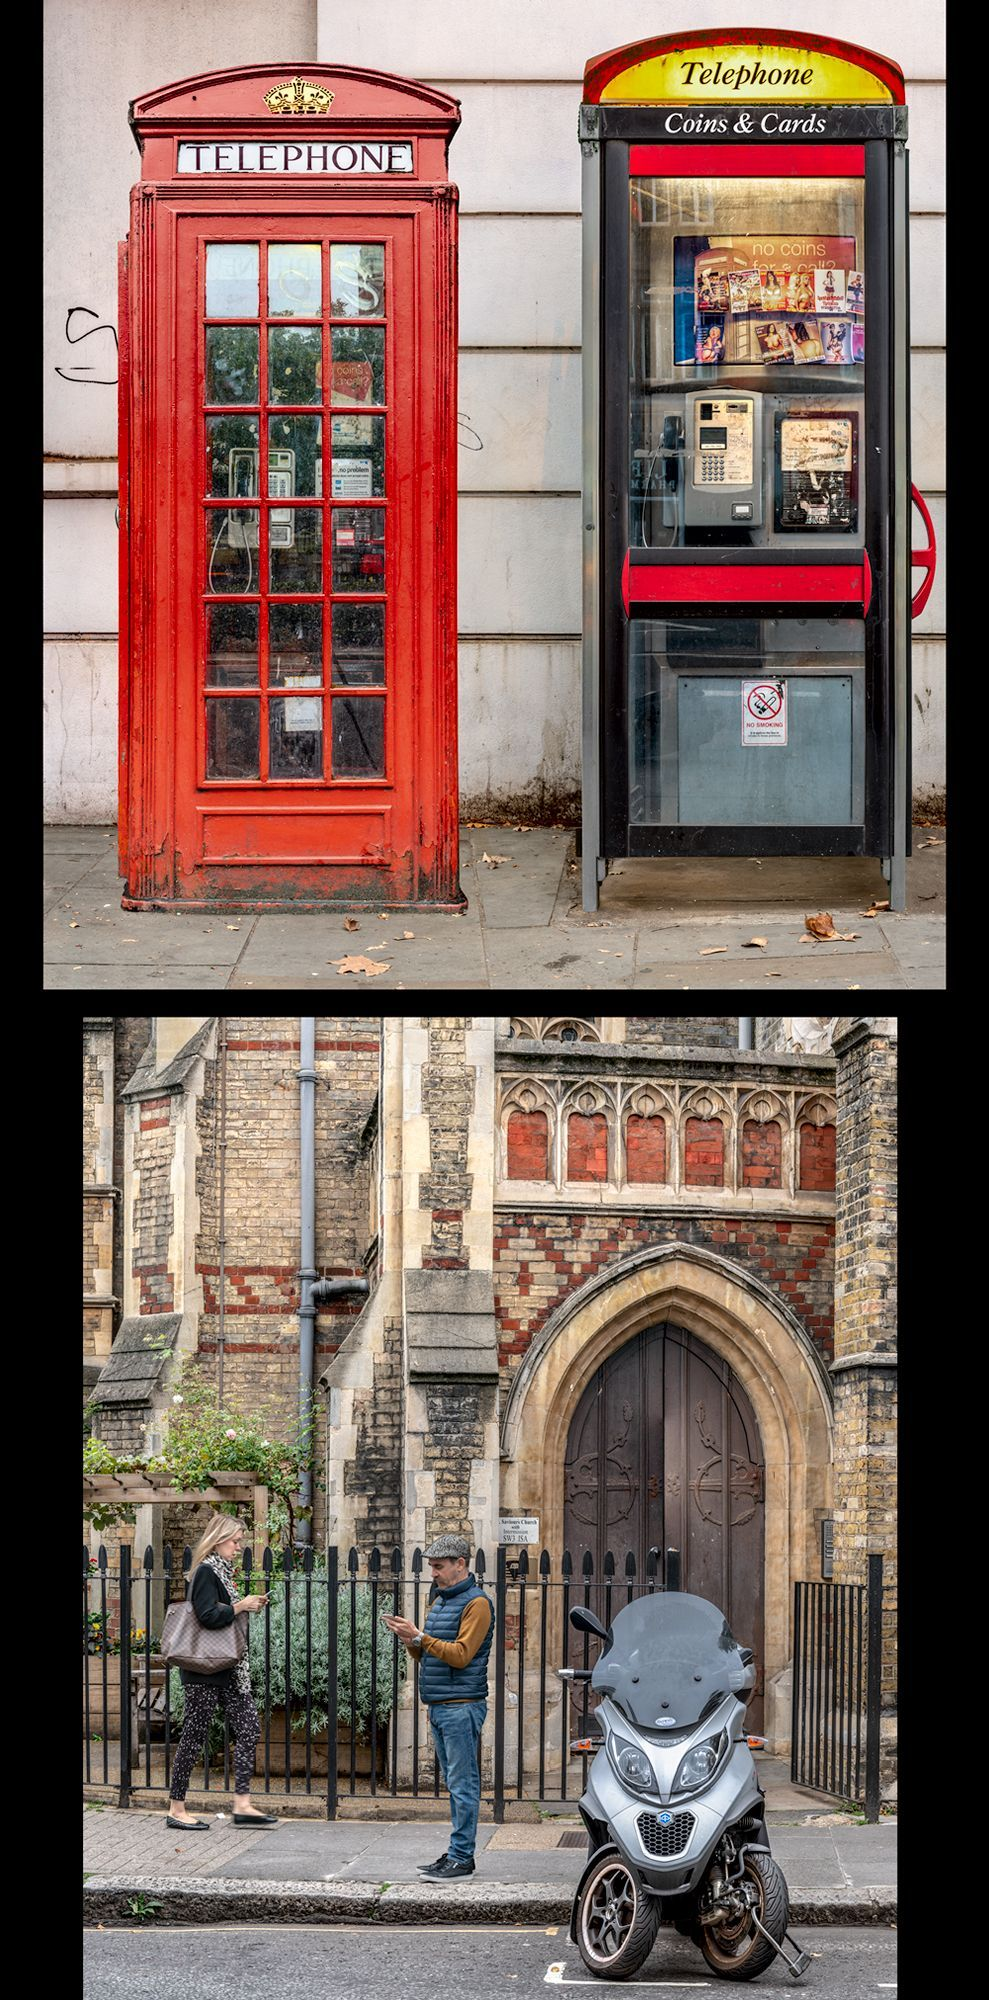 Booths/Saviour's Church